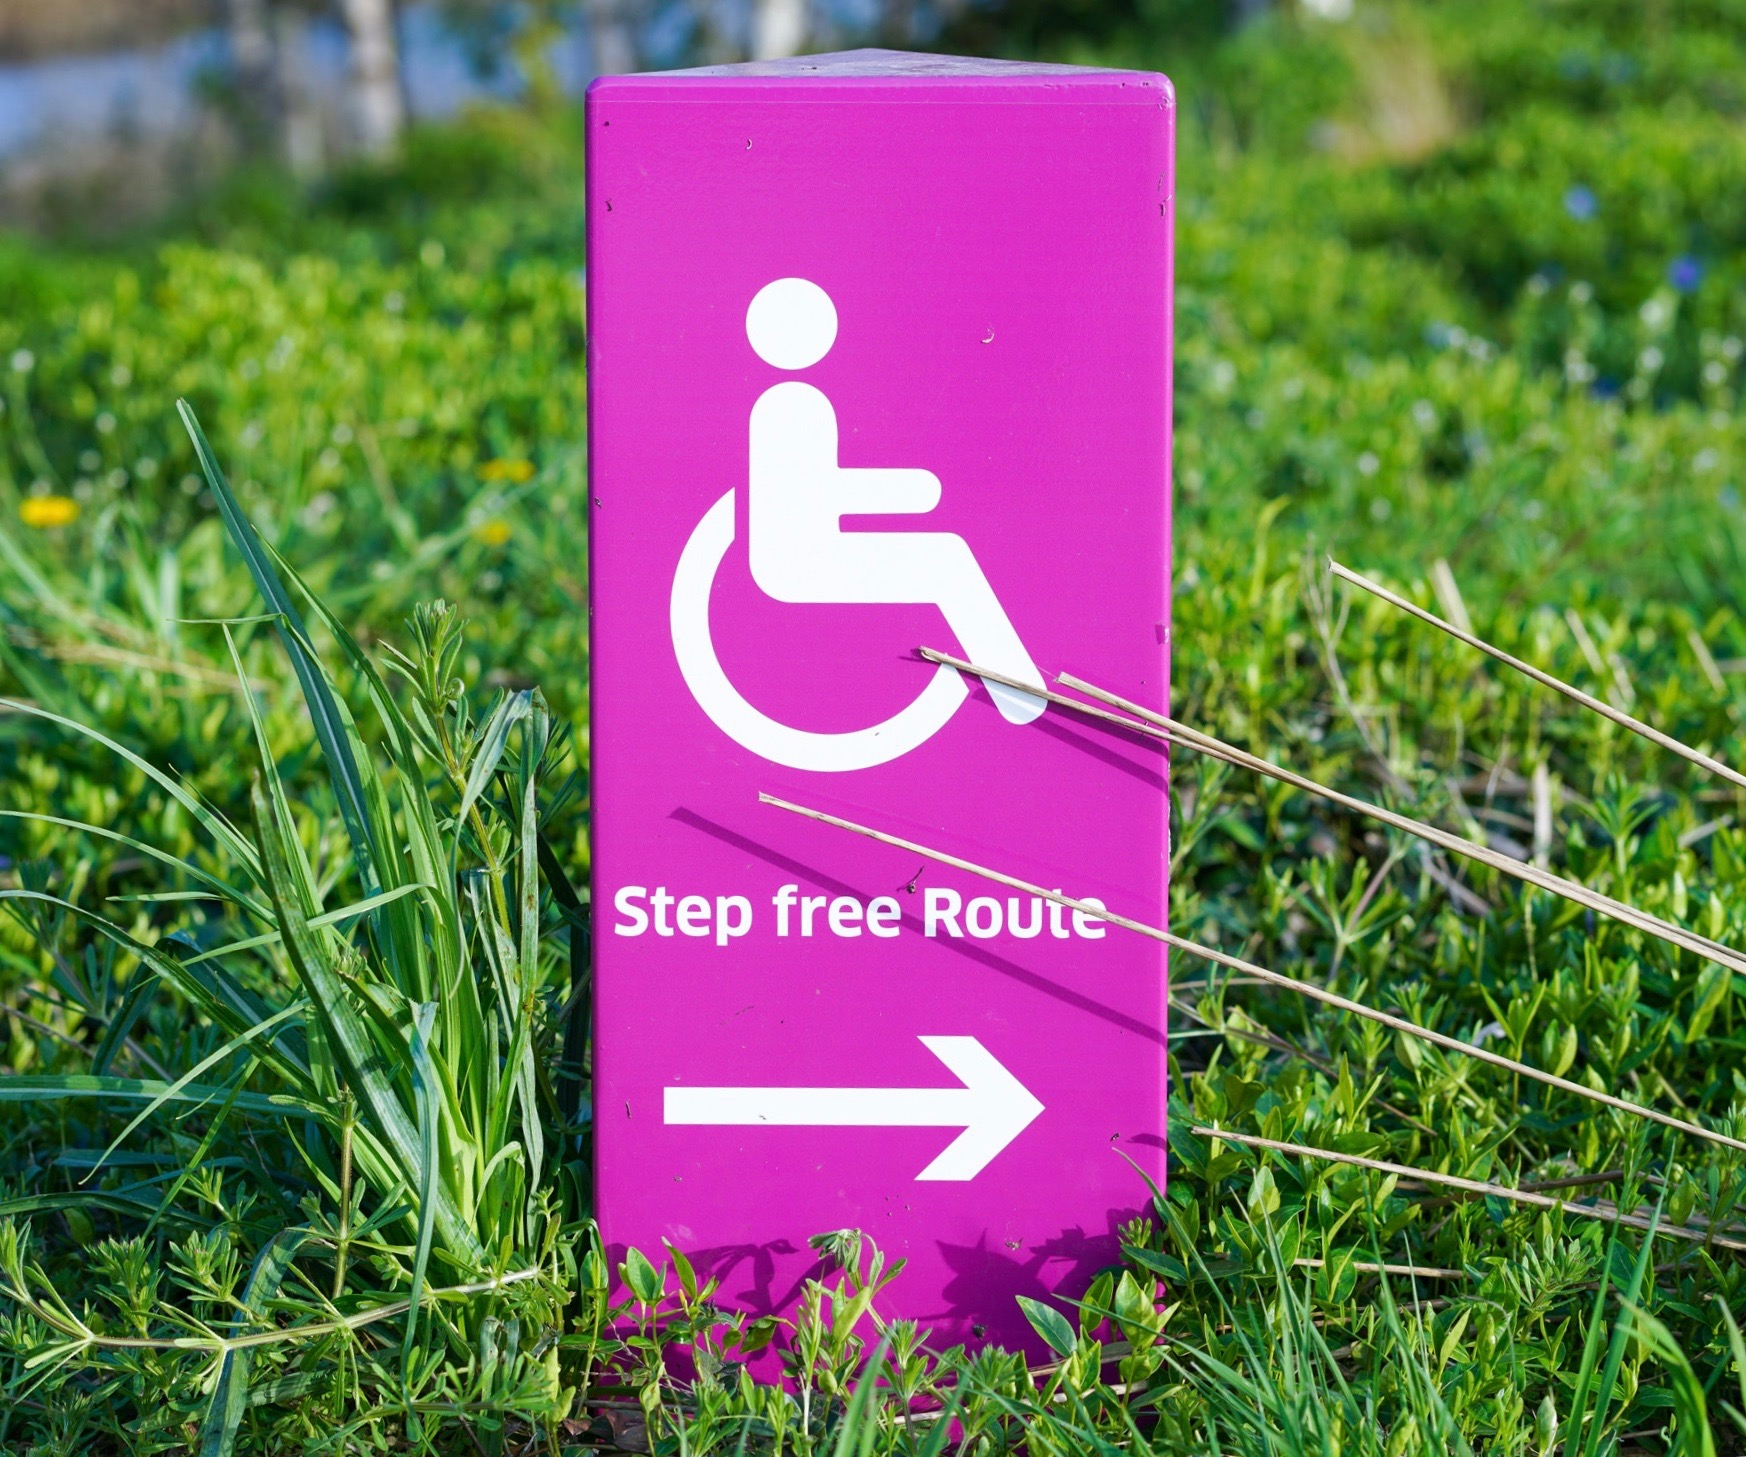 Disabled travelers: Blow past your limits